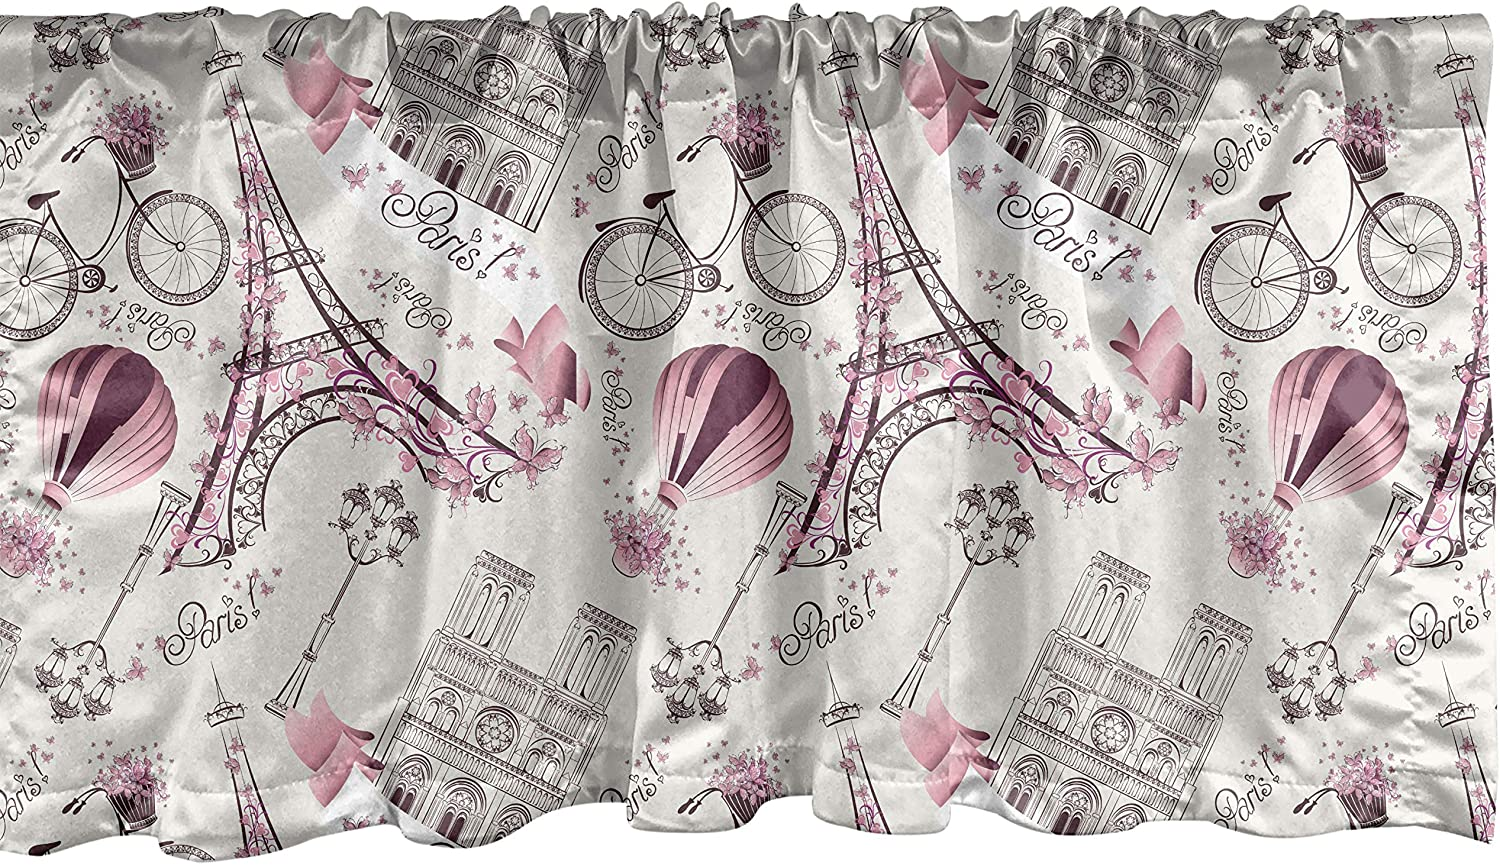 Lunarable City Love Window Valance, Iconic Elements of Paris Hearts on The Eiffel Tower and a Bicycle, Curtain Valance for Kitchen Bedroom Decor with Rod Pocket, 54